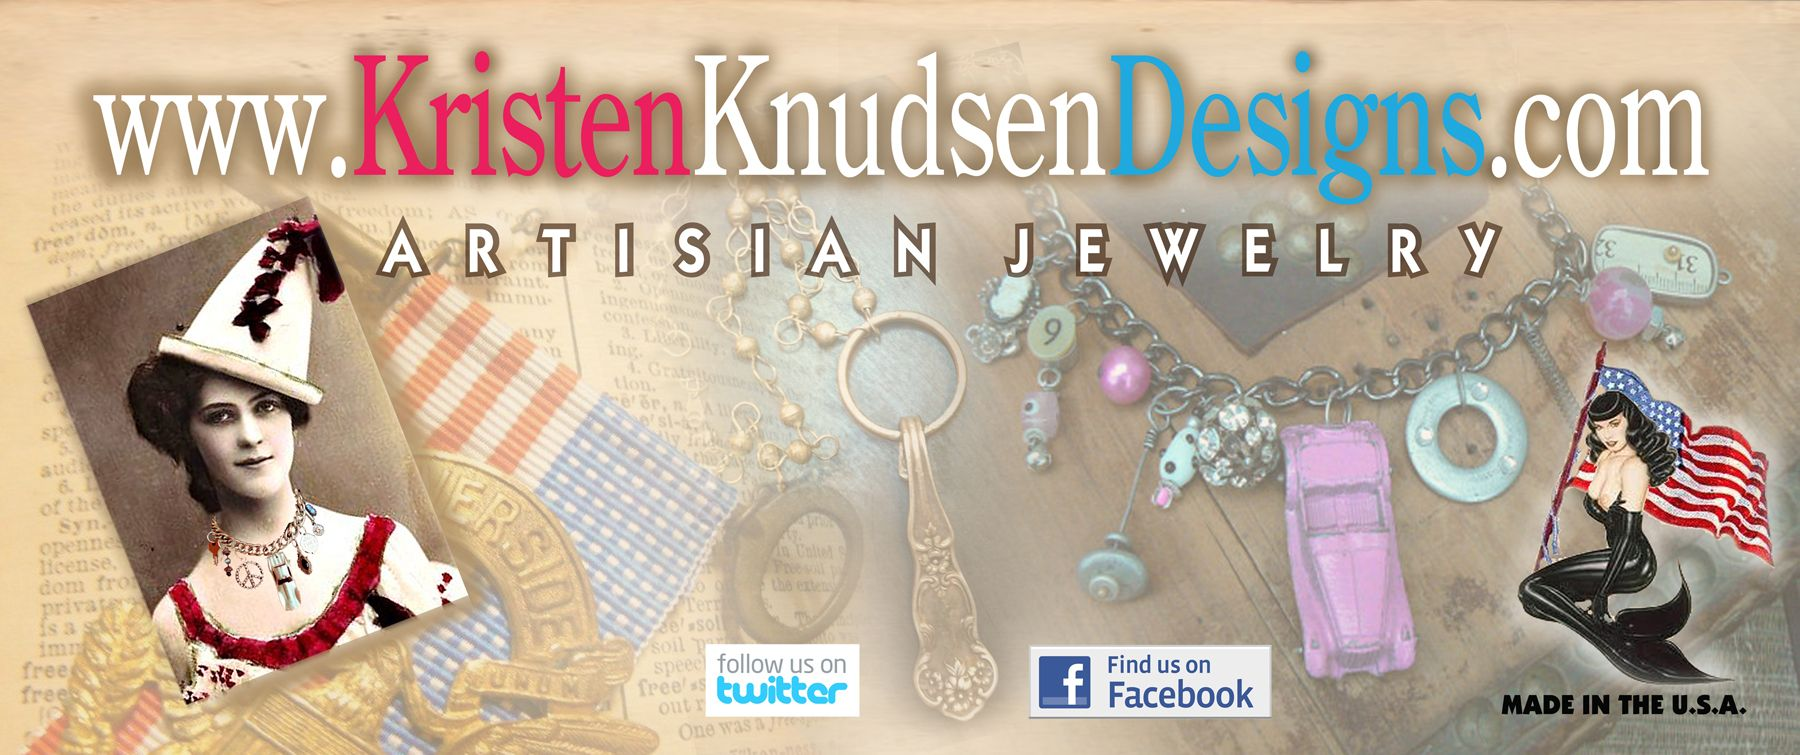 Banner for Booth when doing Art Shows  www.KristenKnudsenDesigns.com